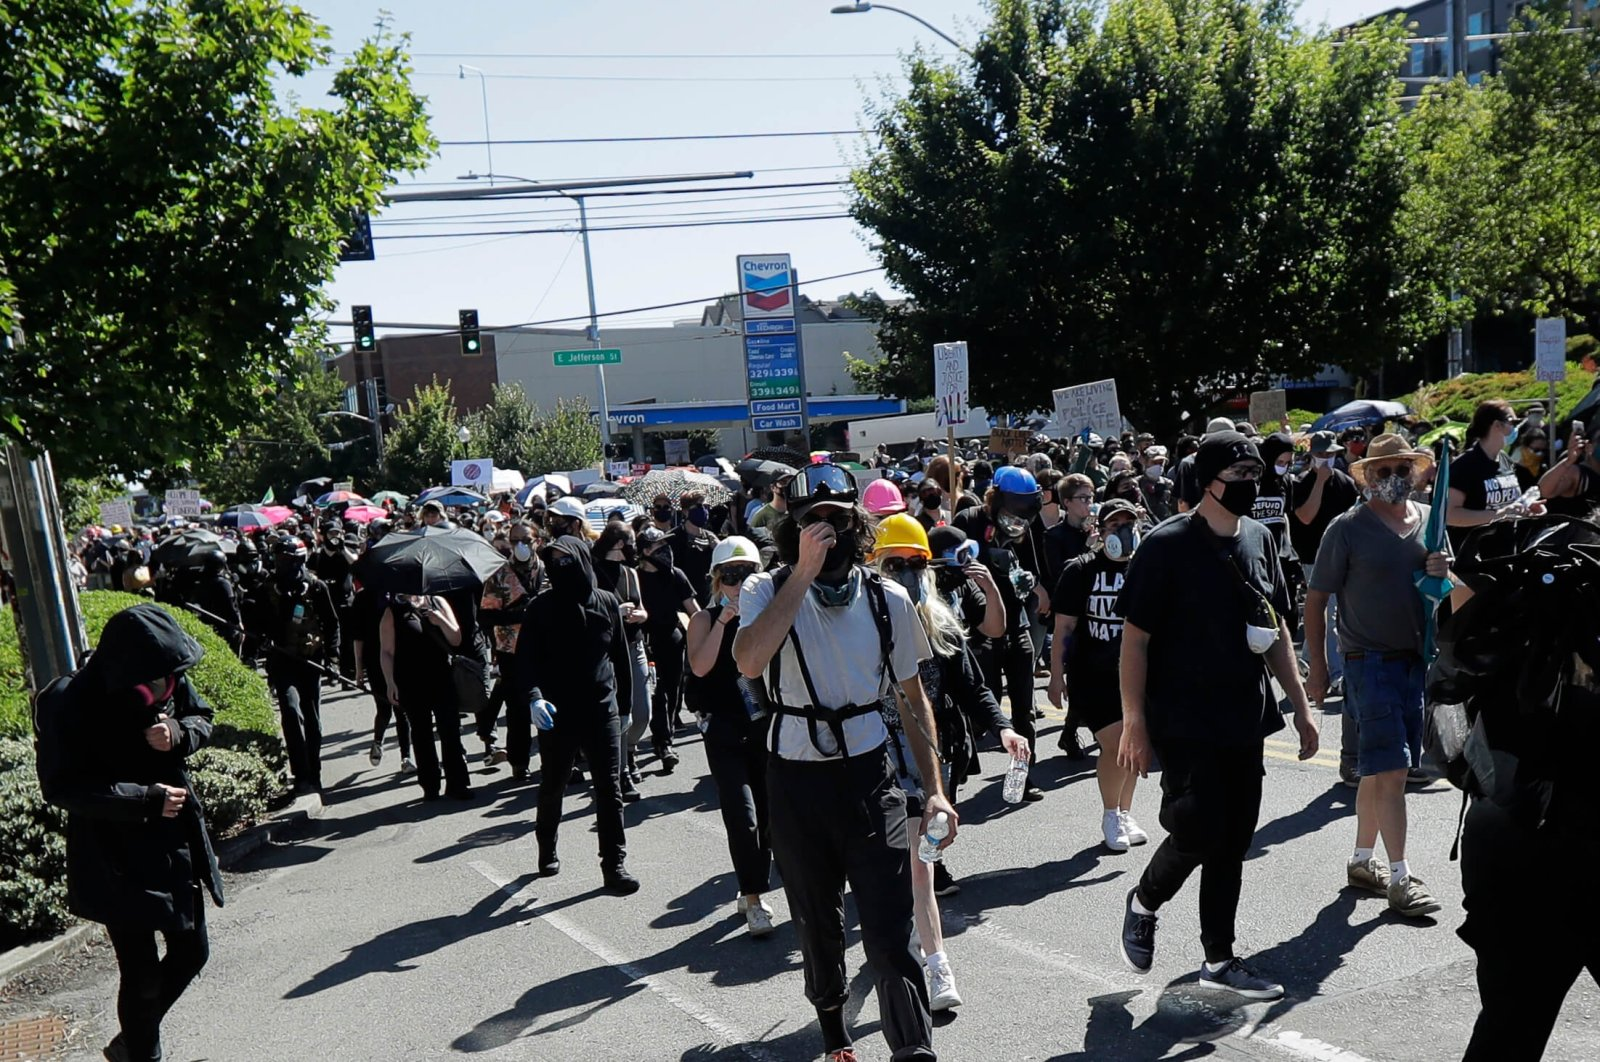 Protesters march near the King County Juvenile Detention Center, Saturday, July 25, 2020, in Seattle, in support of Black Lives Matter and against police brutality and racial injustice. (AP Photo)